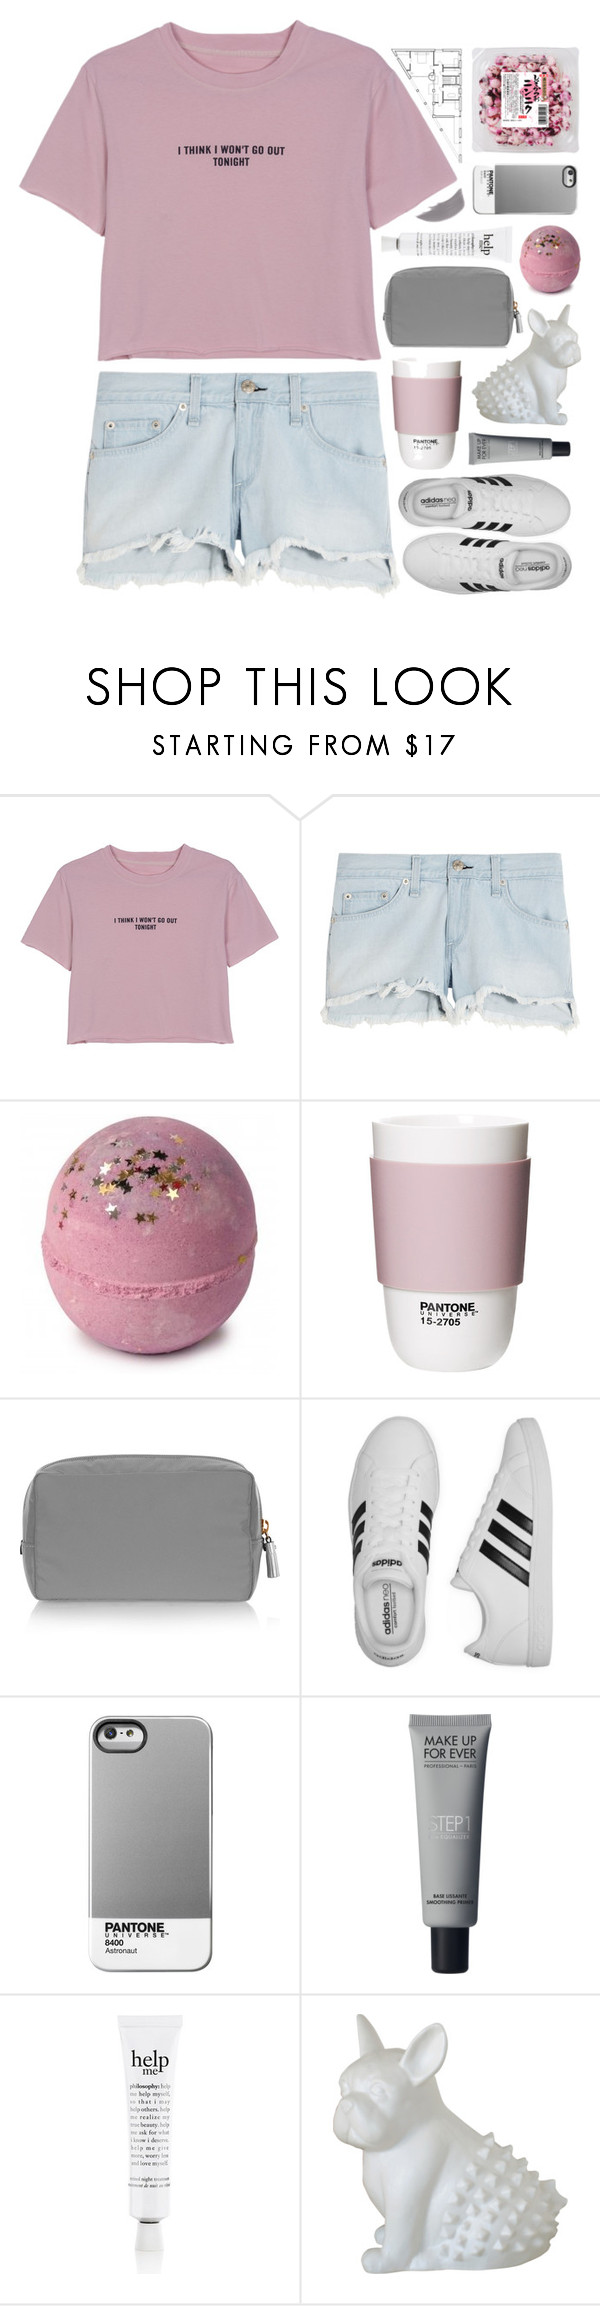 """☽✧ but my taste in music is your face"" by blonde-scorpio-xo ❤ liked on Polyvore featuring WithChic, rag & bone, ROOM COPENHAGEN, Anya Hindmarch, adidas, Case Scenario, philosophy, Imm Living and Jane Iredale"